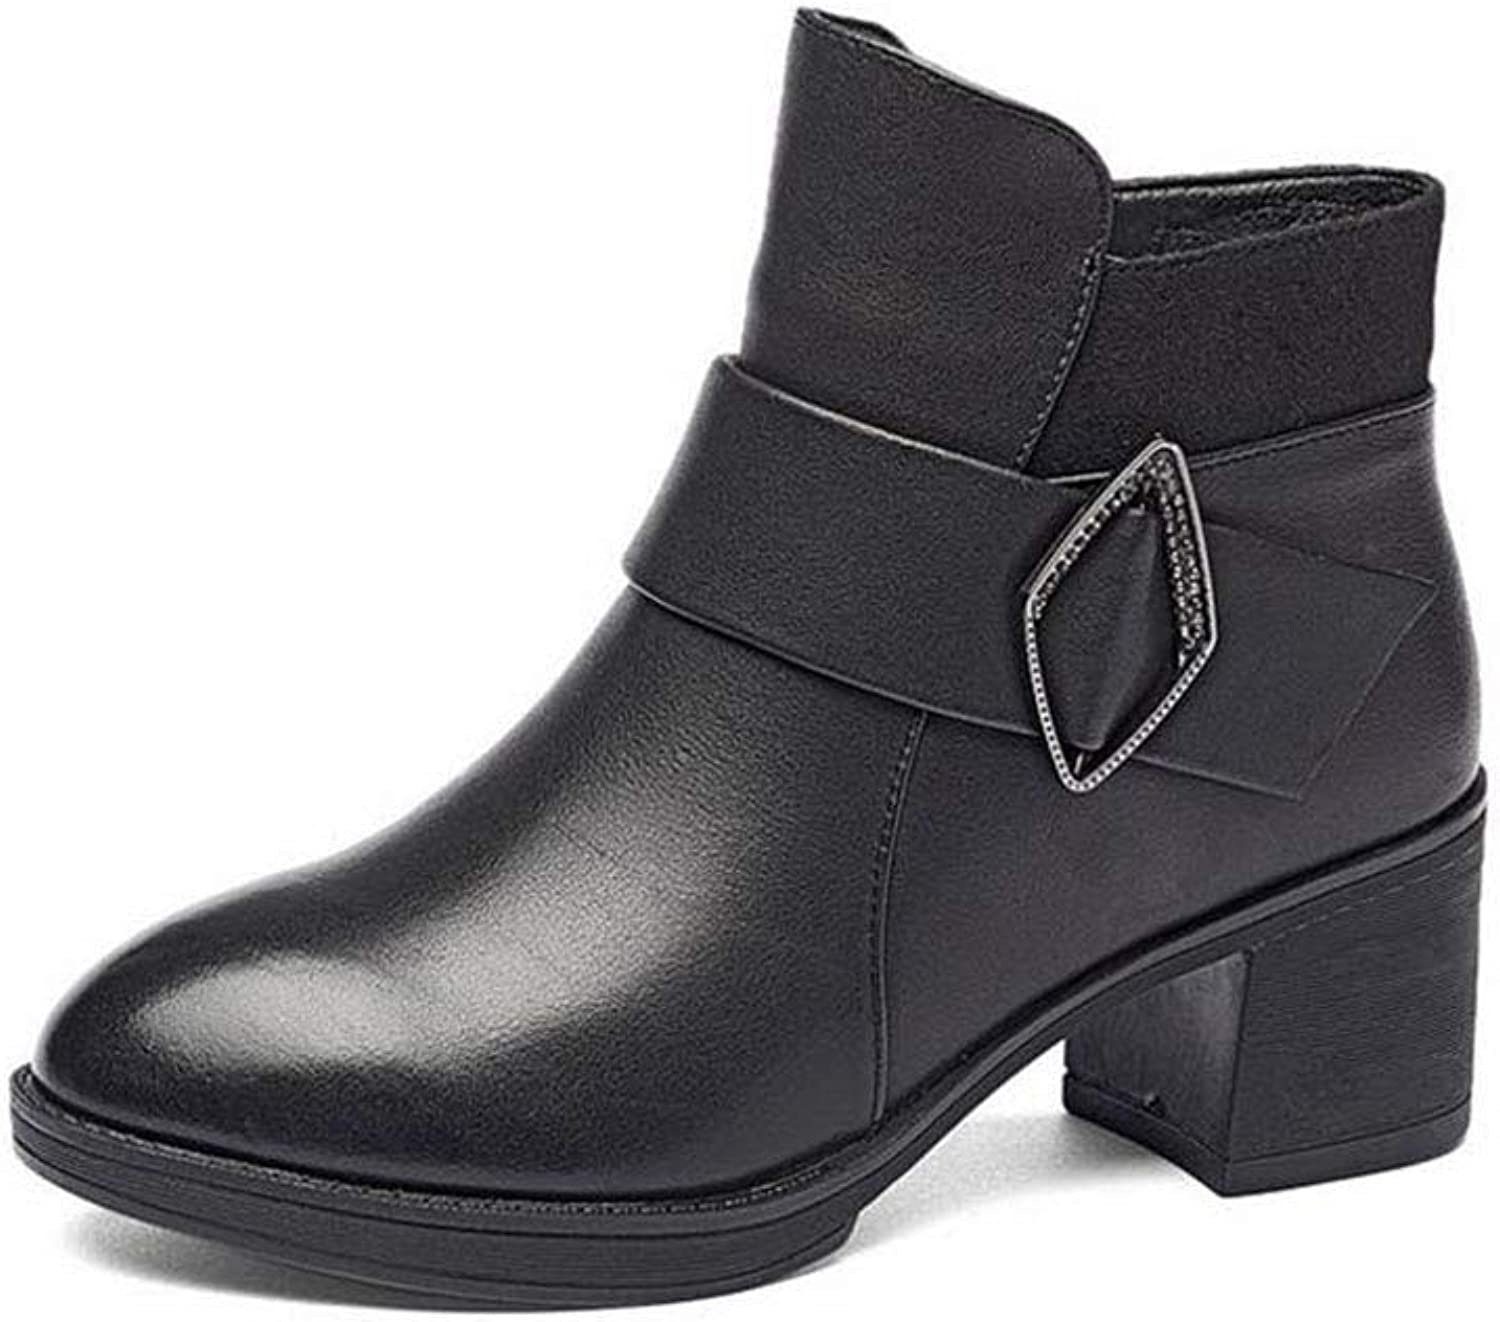 Women's Ankle Boots, High-Heeled Leather Martin Boots Ladies Booties Thick Round Head Breathable Leather Boots (color   Black, Size   37)